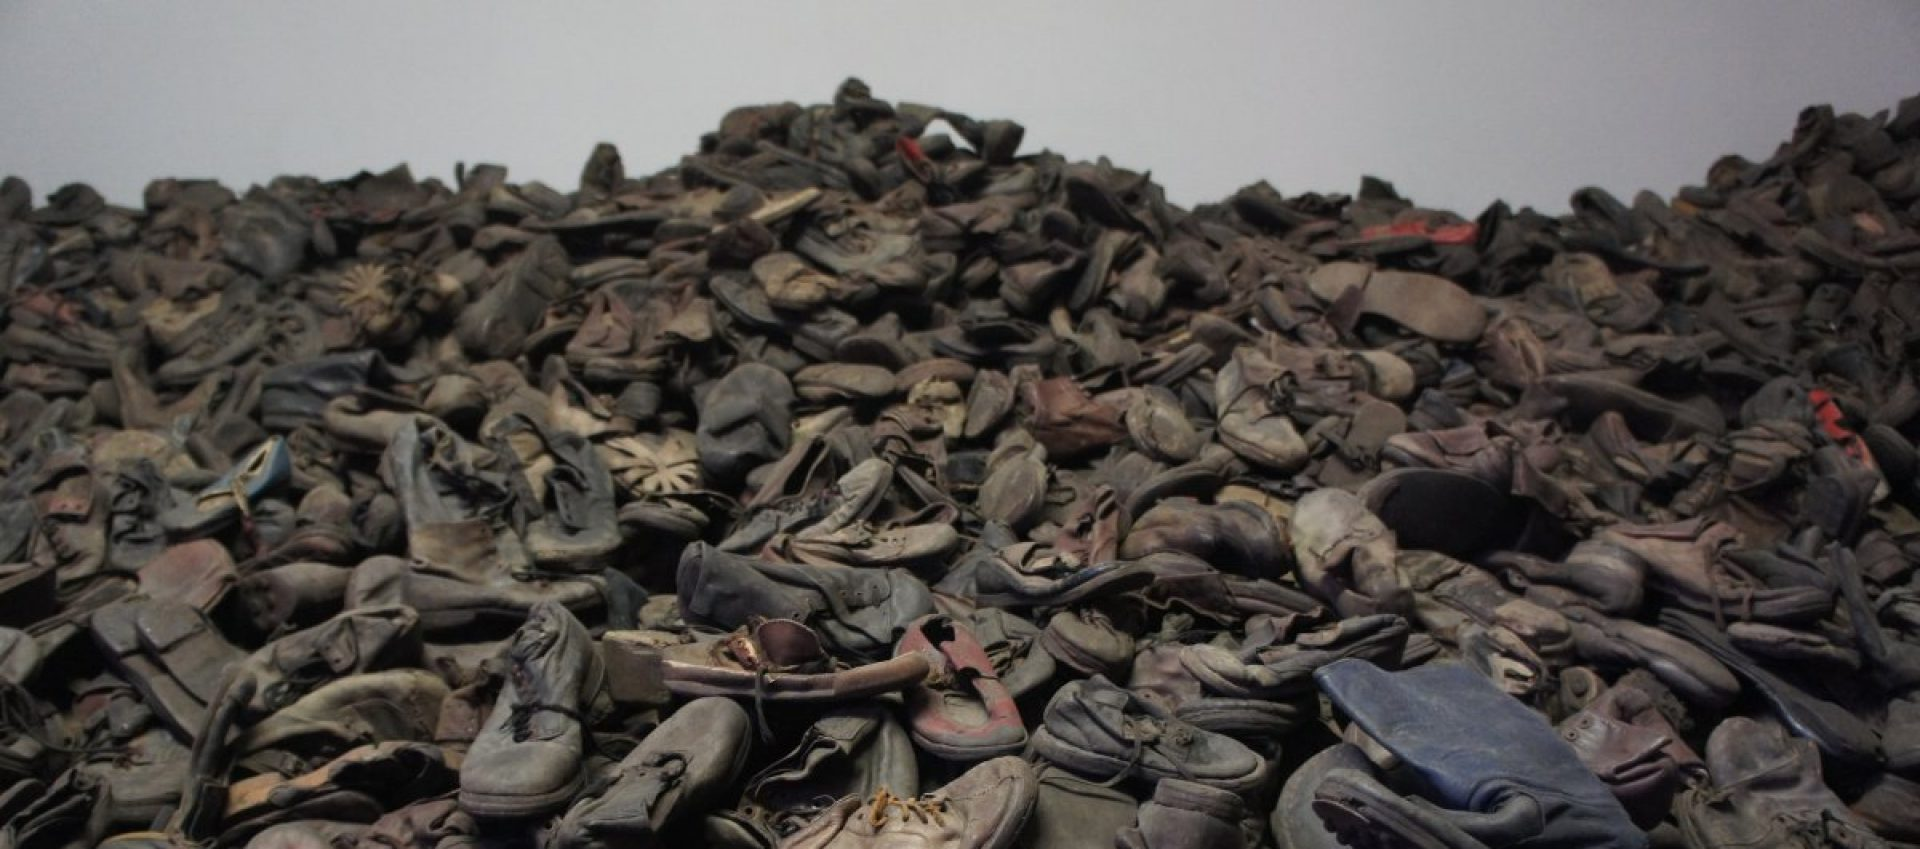 Part of the constant exhibition in Auschwitz.